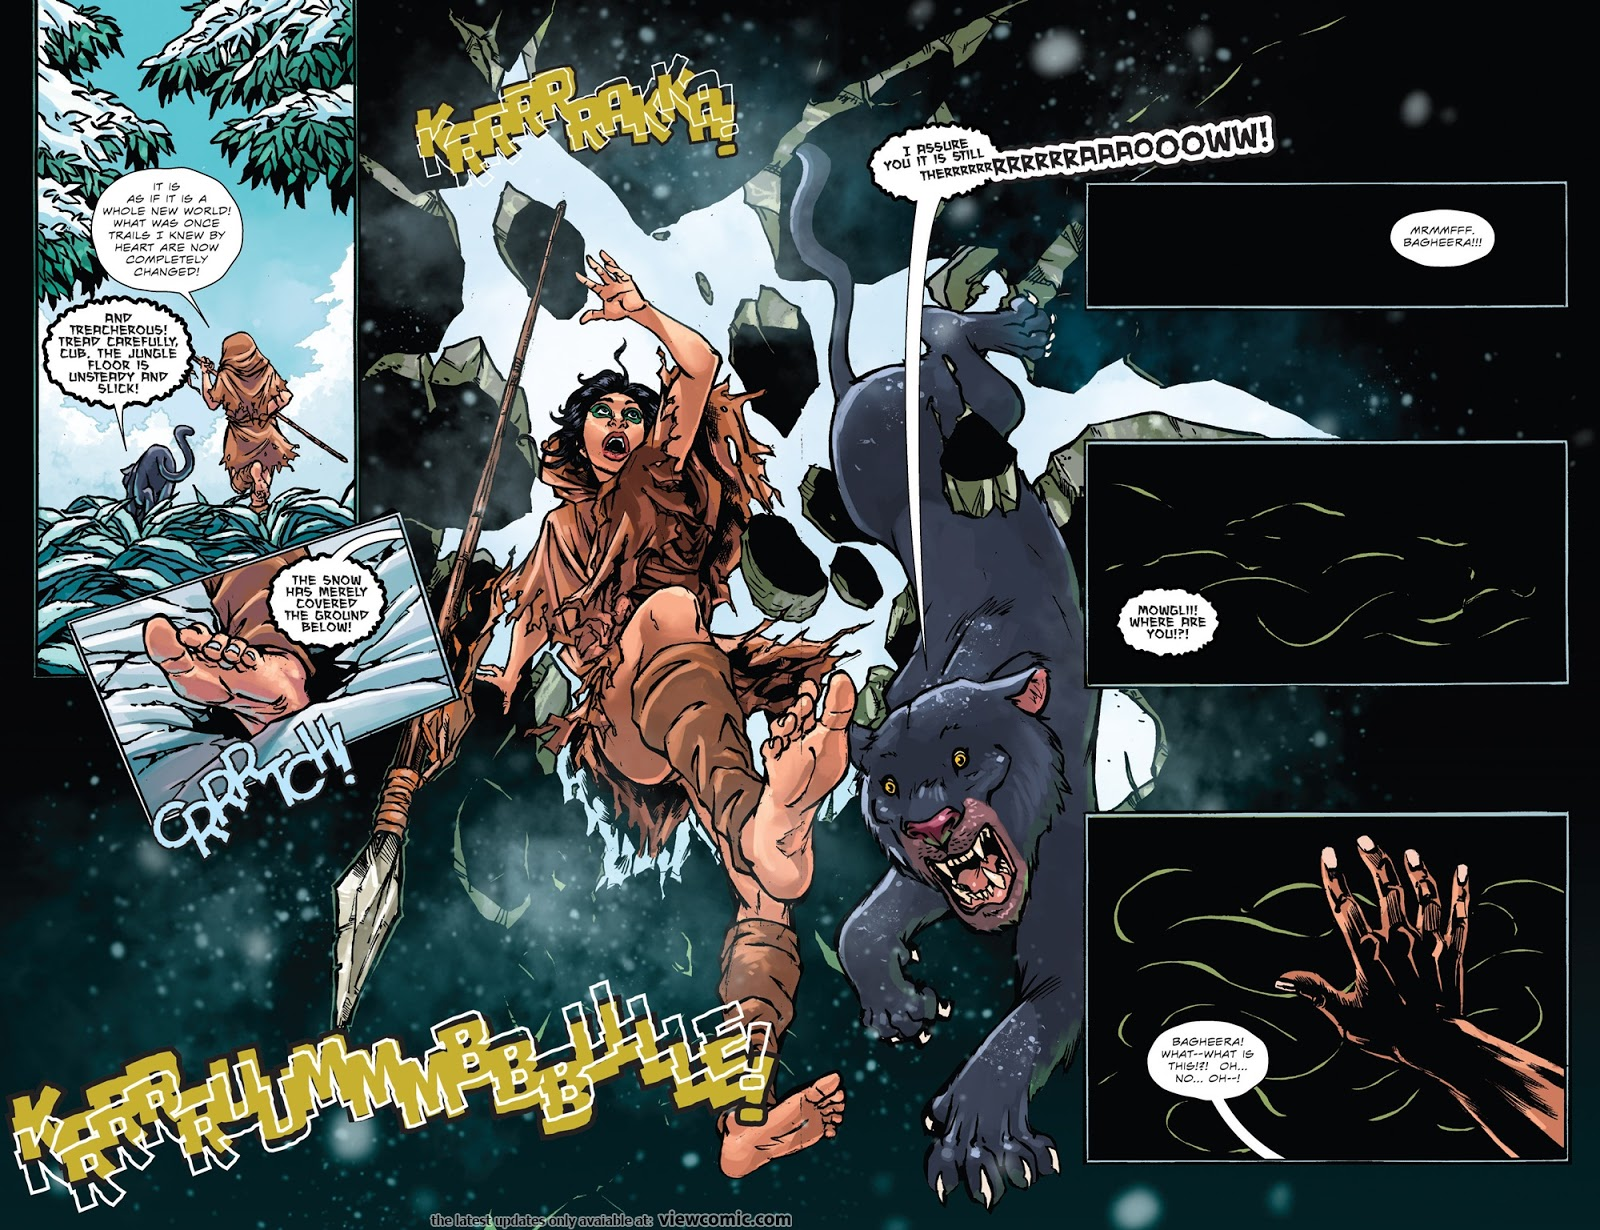 Porn Jungle Book 2016 - Jungle Book 2016 Holiday Special 2016   Read Jungle Book 2016 Holiday  Special 2016 comic online in high quality. Read Full Comic online for free  - Read comics online in high quality .